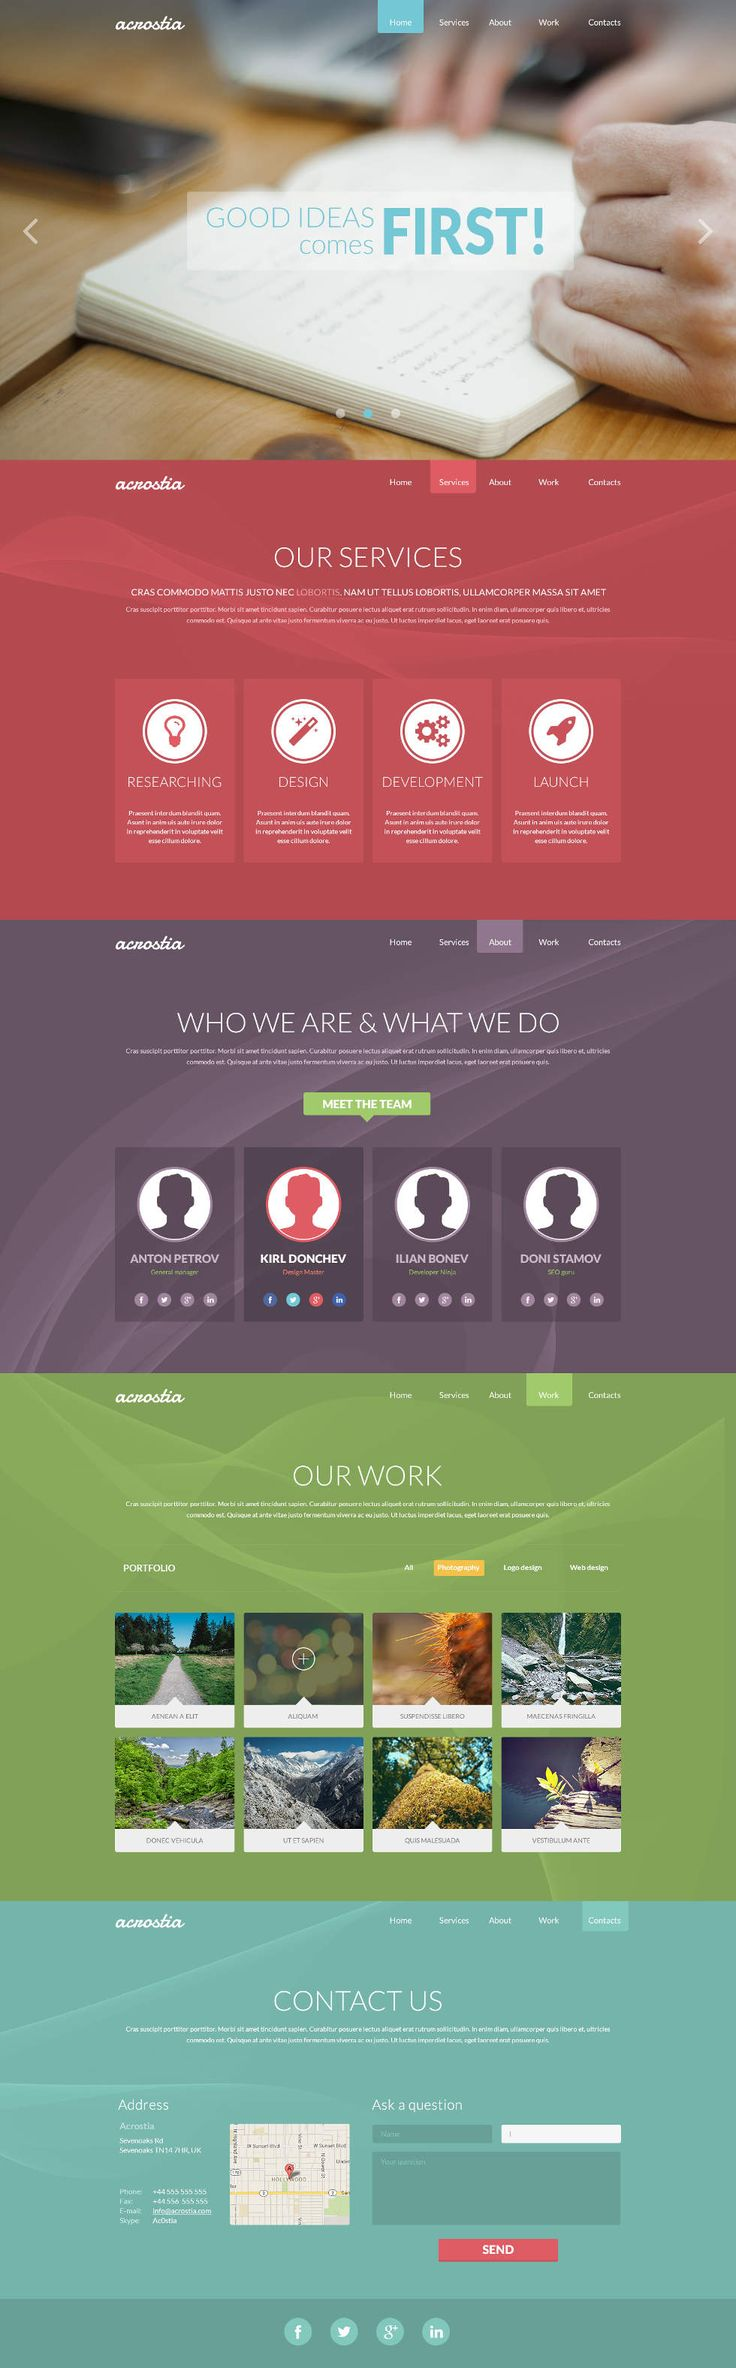 Acrostia One Page PSD Website Template